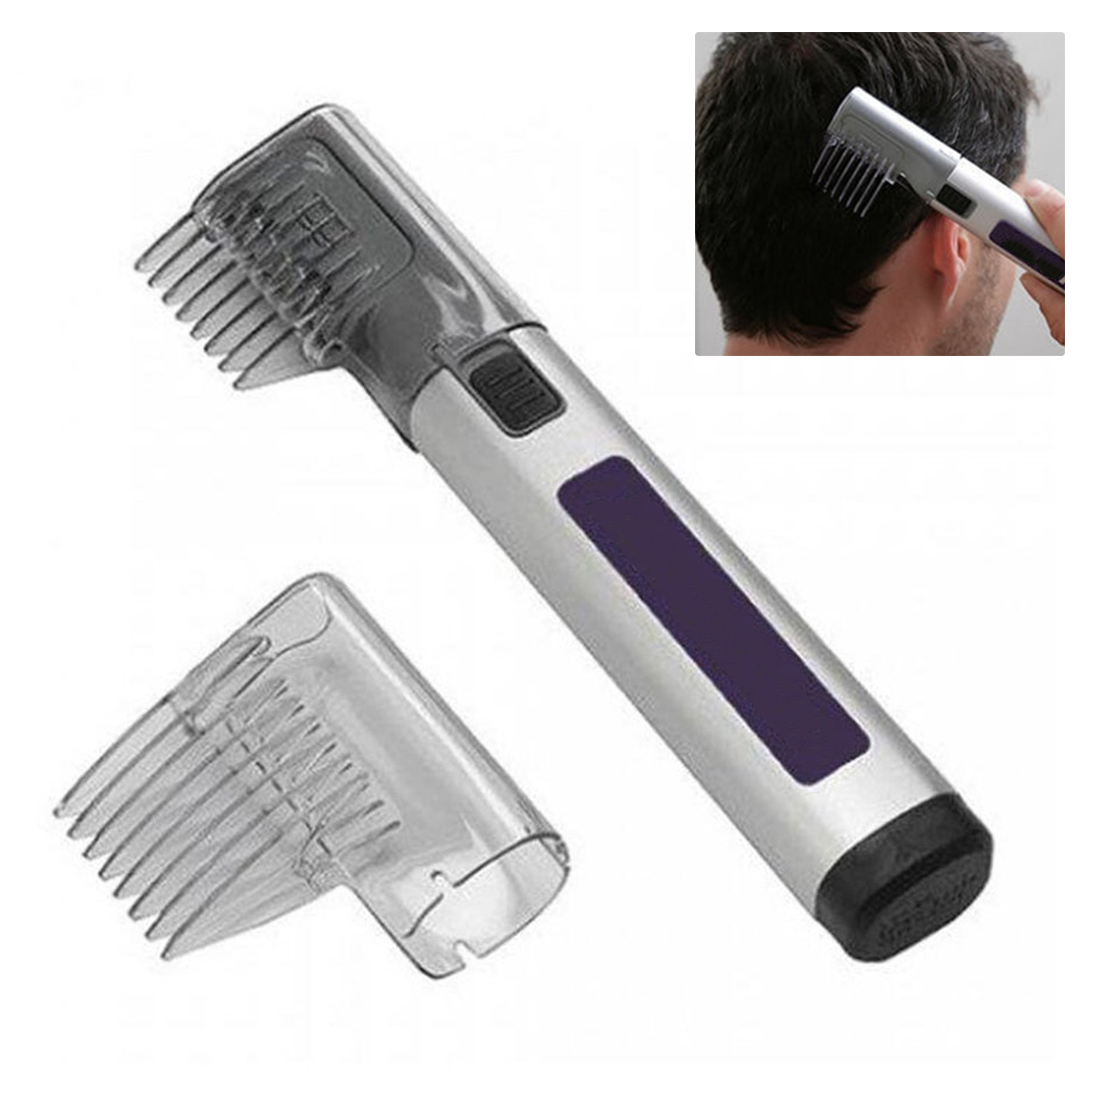 3 In 1 Quality Trimmer Razor Comb Handheld Hair Clipper The Magic Mistake Proof Do It Yourself Haircut Hair Beard Cutting Tool